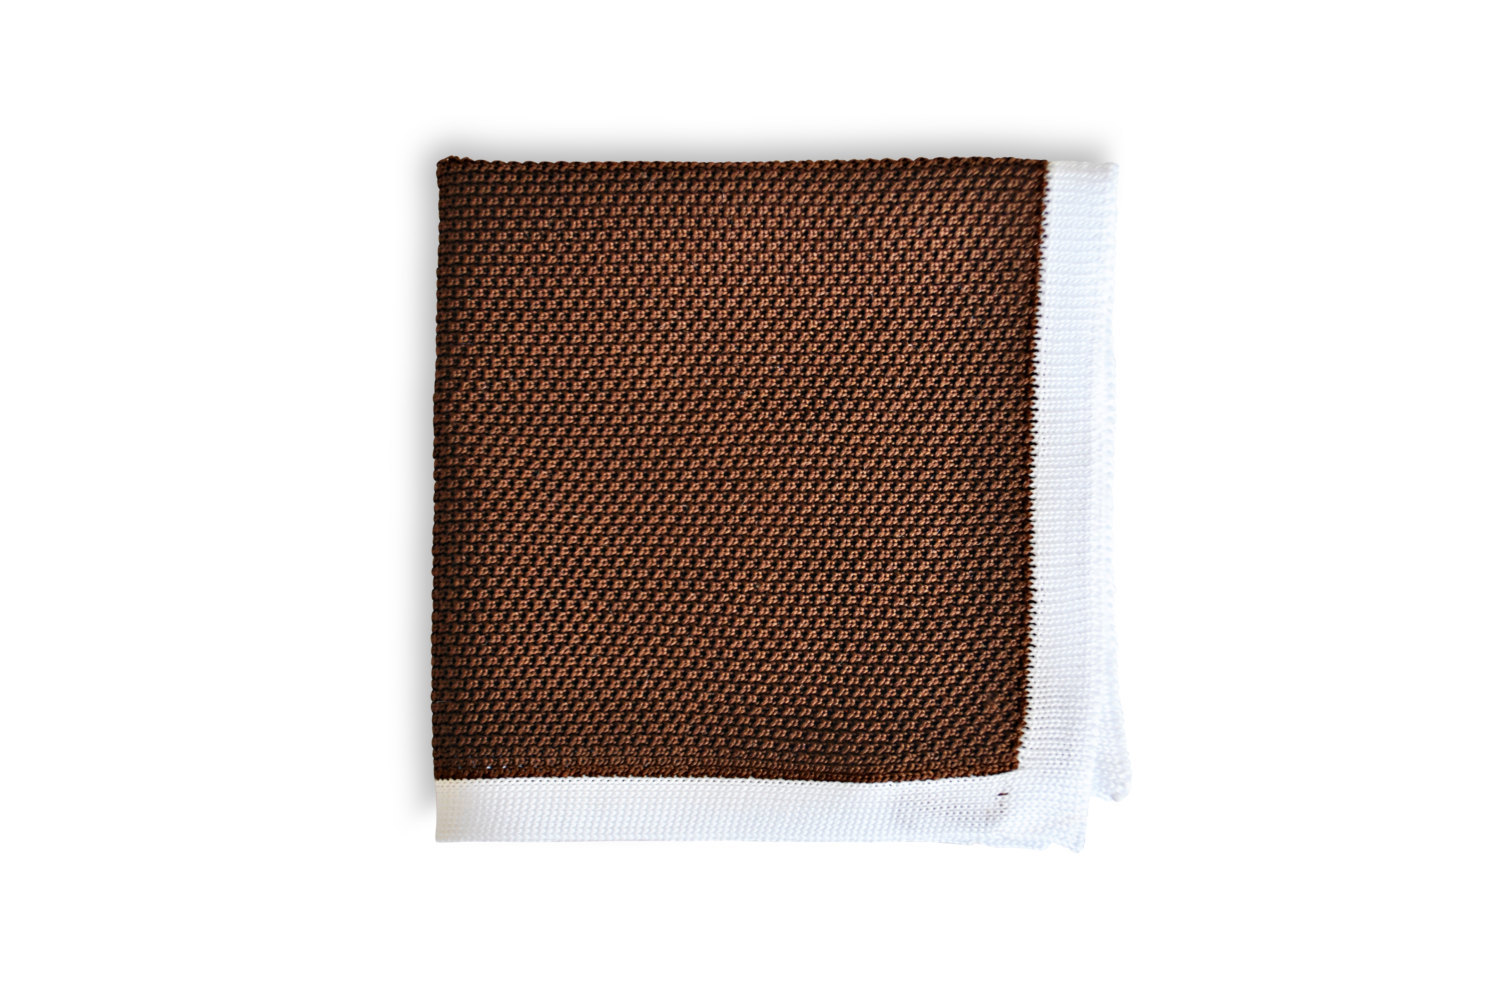 Frederick Thomas knitted Dark Brown with White Edging pocket square with white e